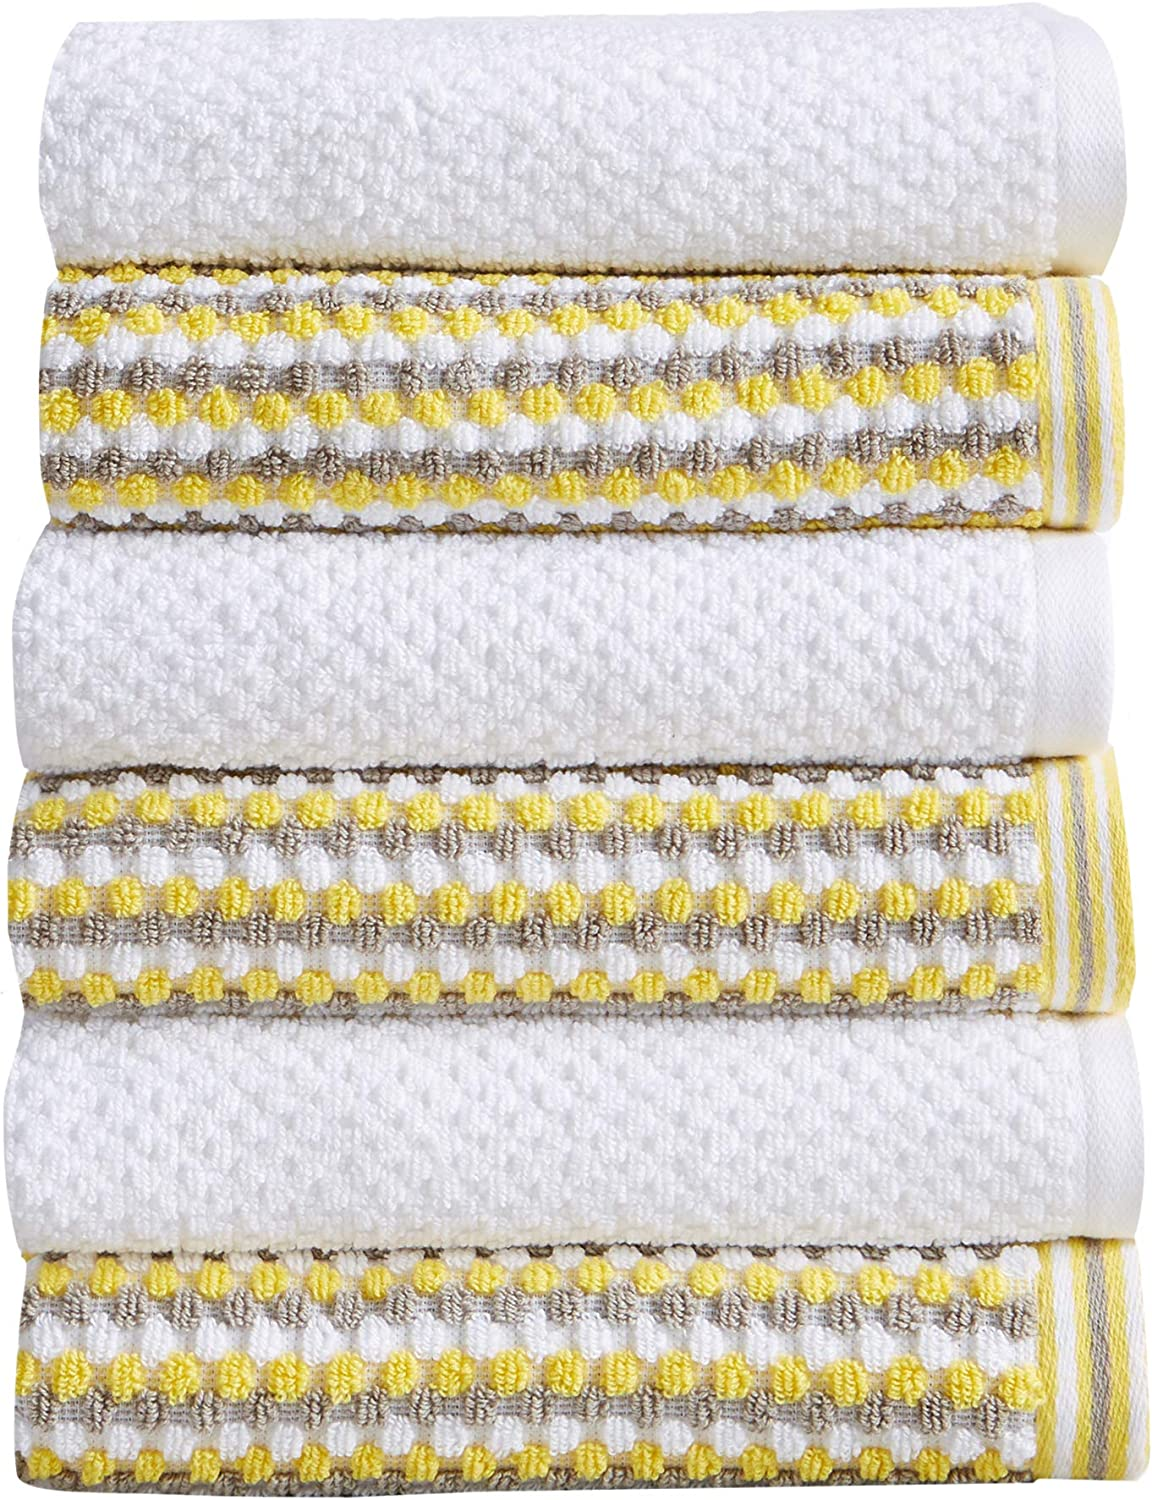 6-Piece Hand Towel Set. 100% Cotton Multi-Striped Bathroom Towels. Quick Dry and Absorbent Towels. Set Includes 6 Hand Towels. Milos Collection (6 Pack, Yellow / Gray)